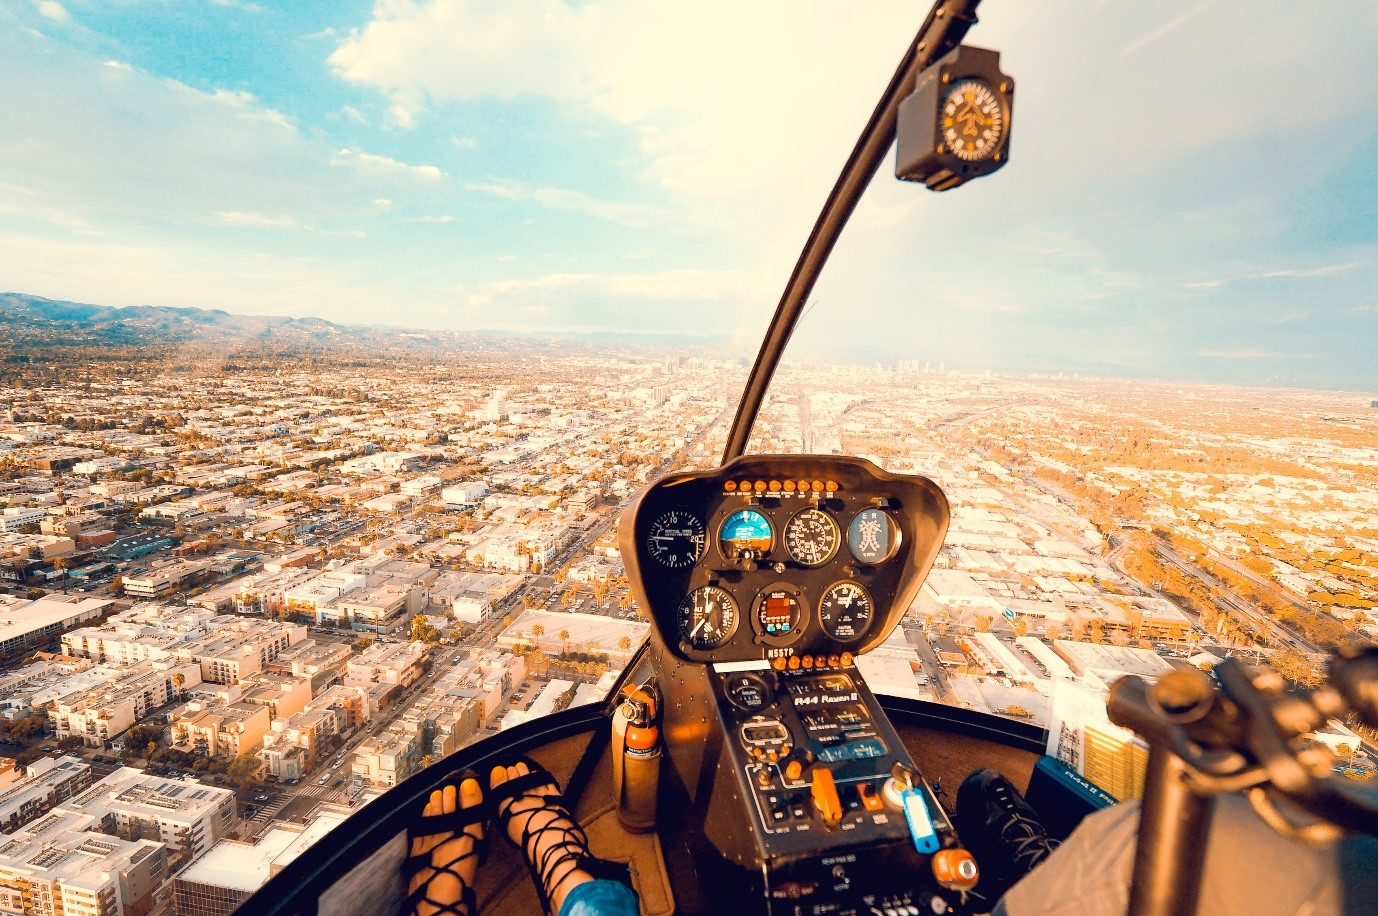 Getting The Most Out Of Your Helicopter Experience